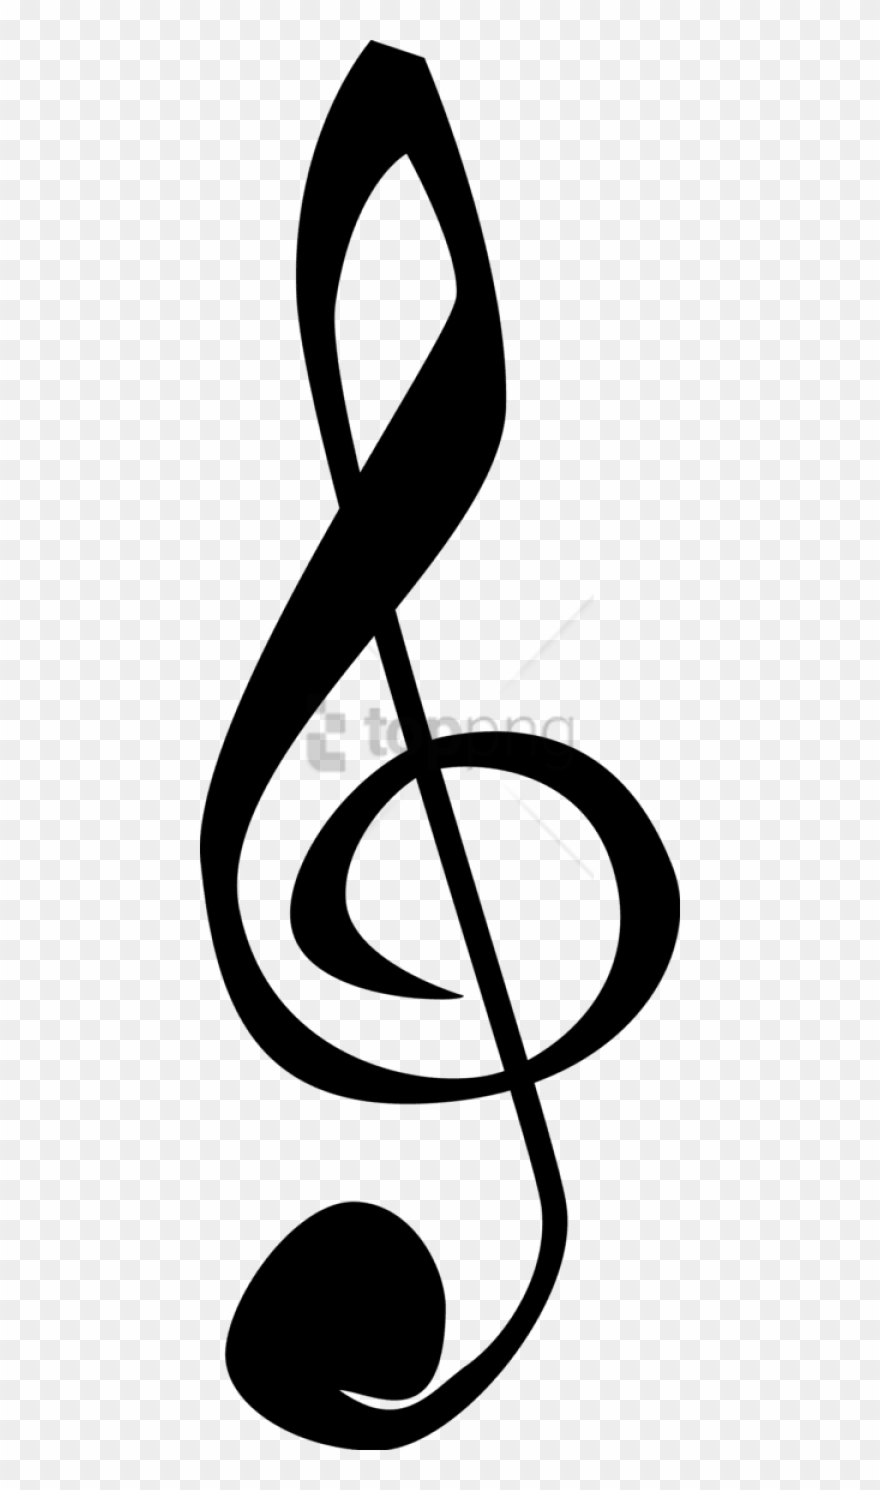 Free Png Music Notes Png Clipart Png Image With Transparent.